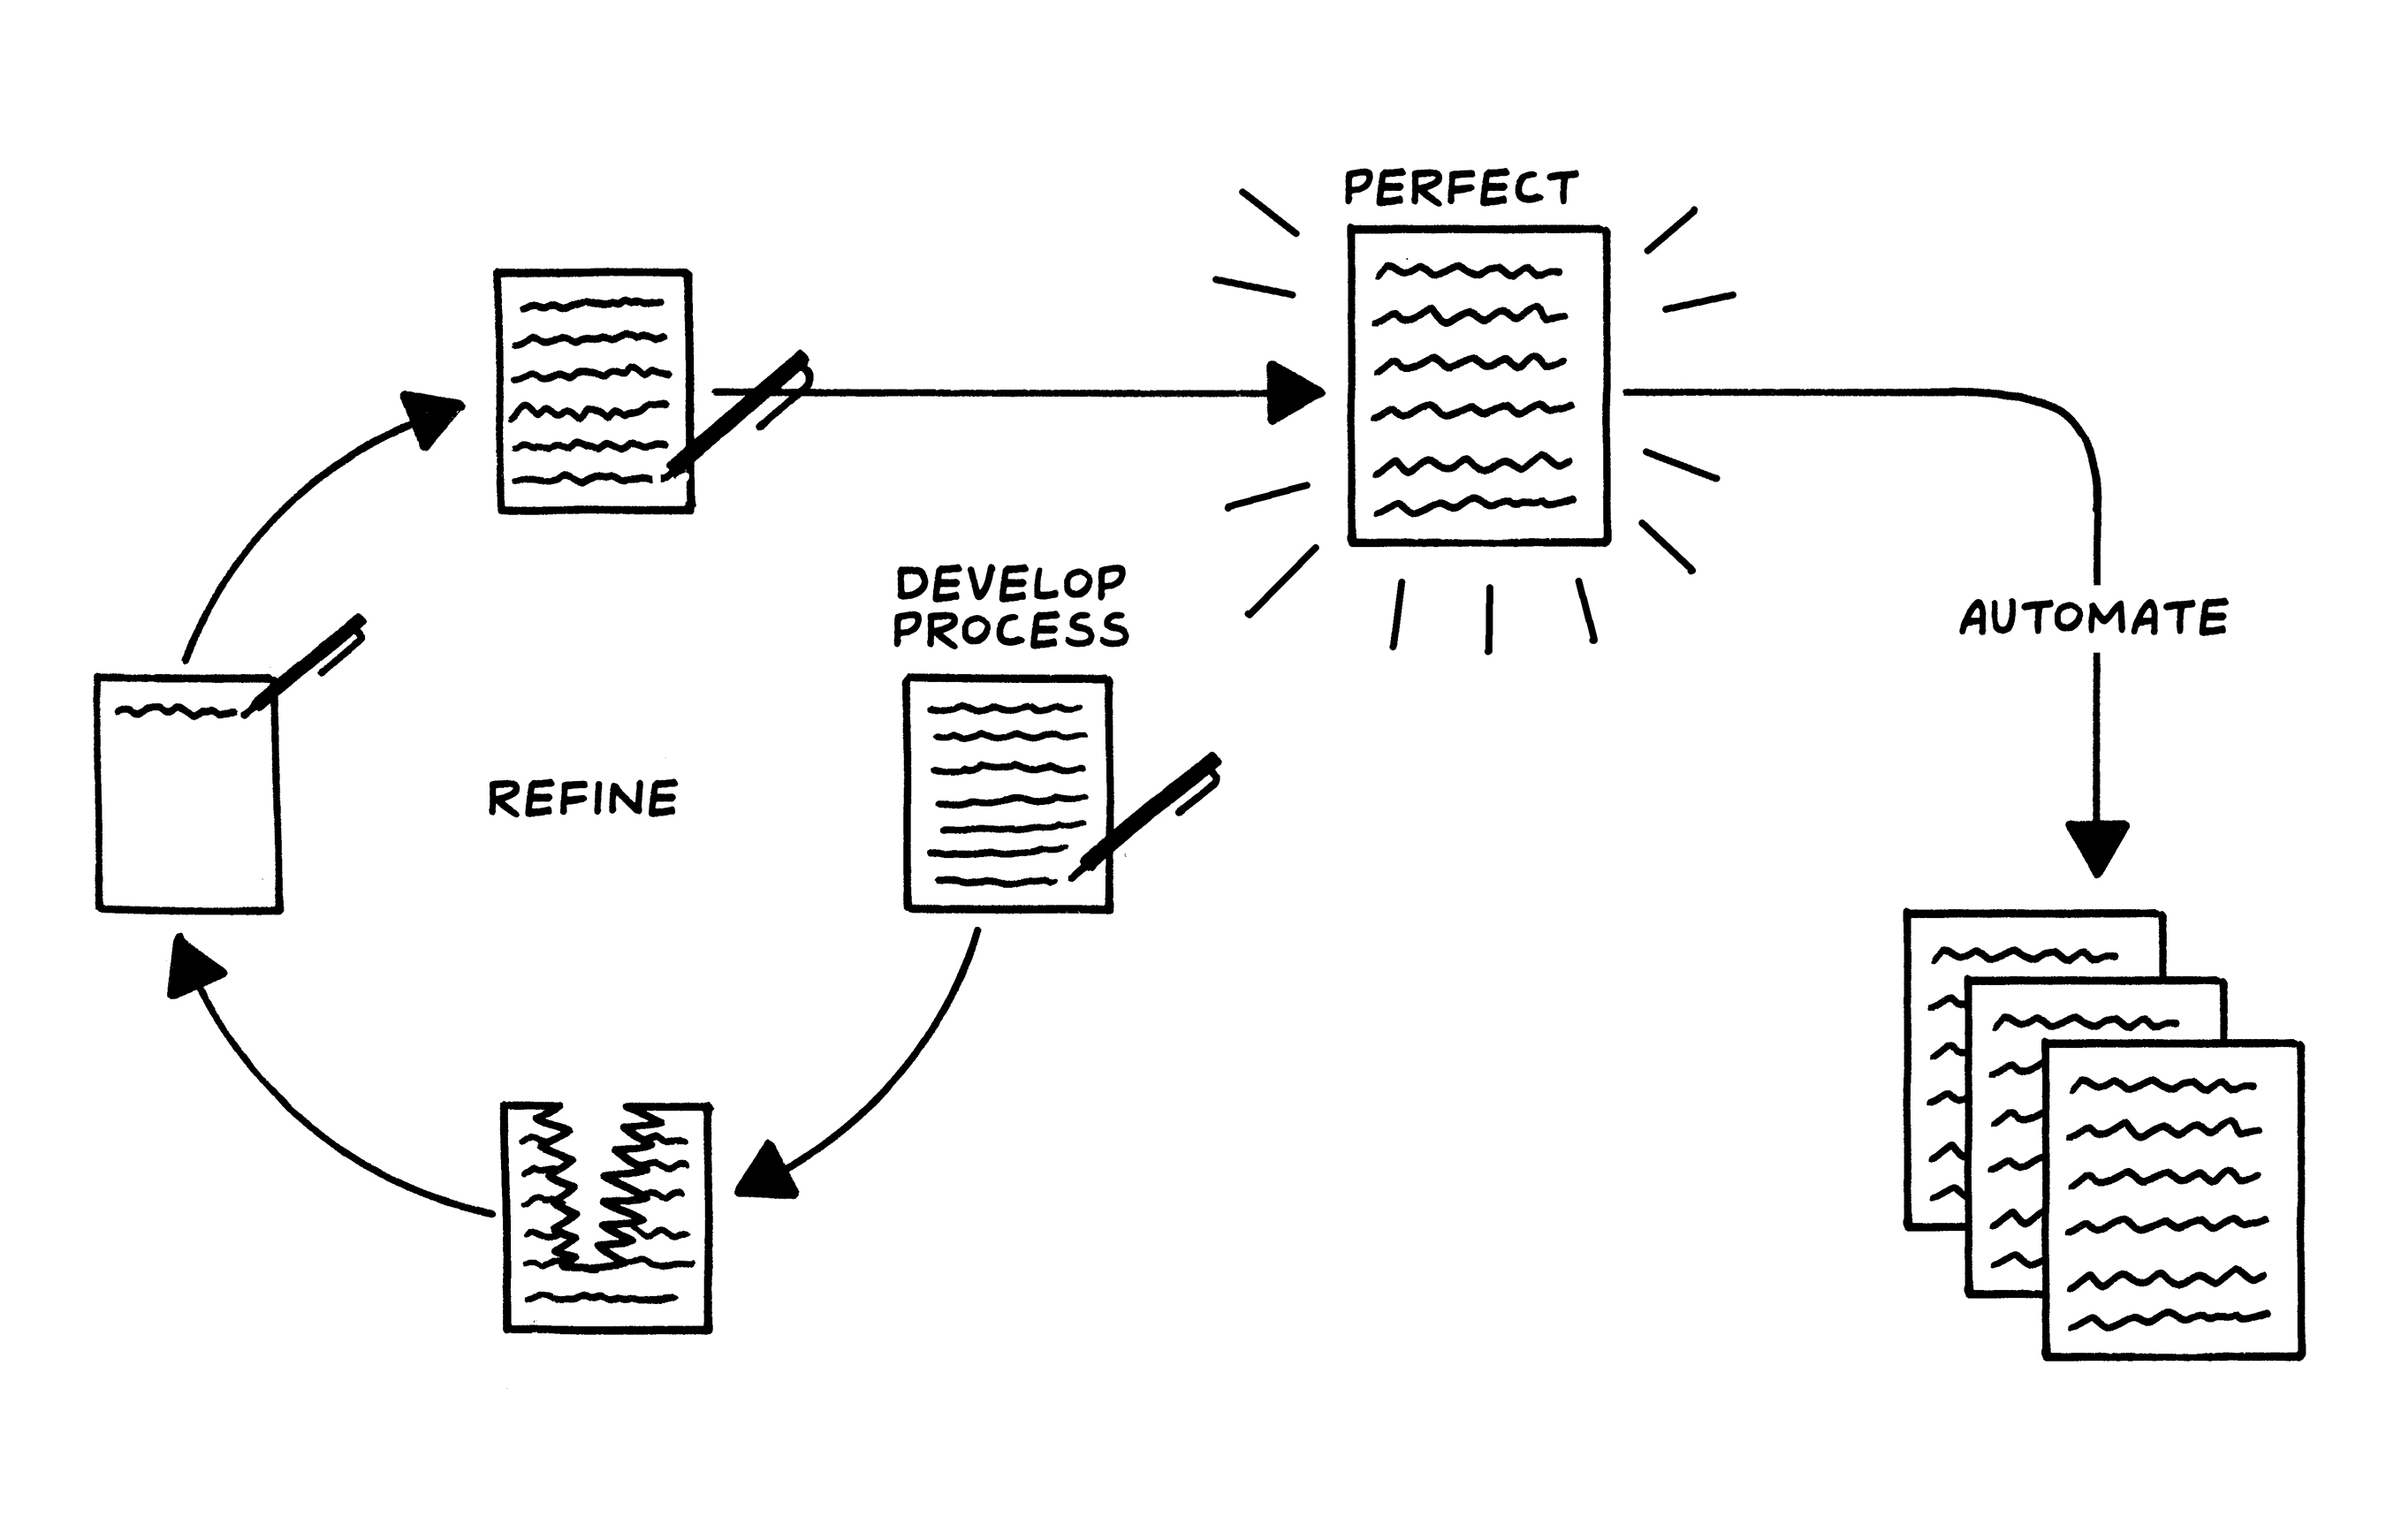 Diagram with steps titled Develop Process, Refine, Perfect, Automate